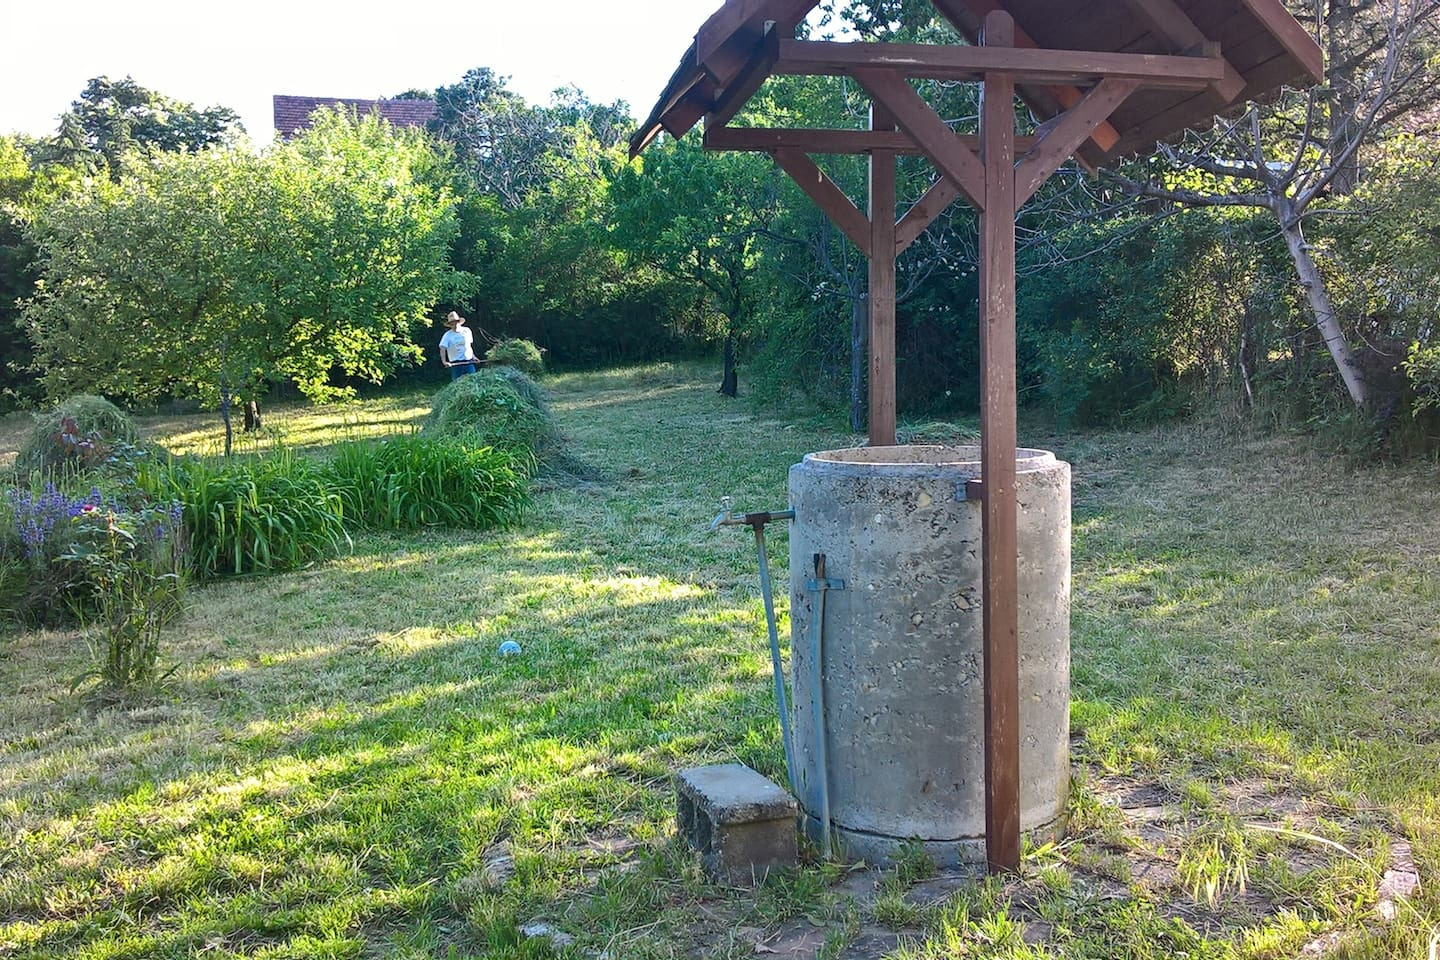 The hay collecting, and the well in front.